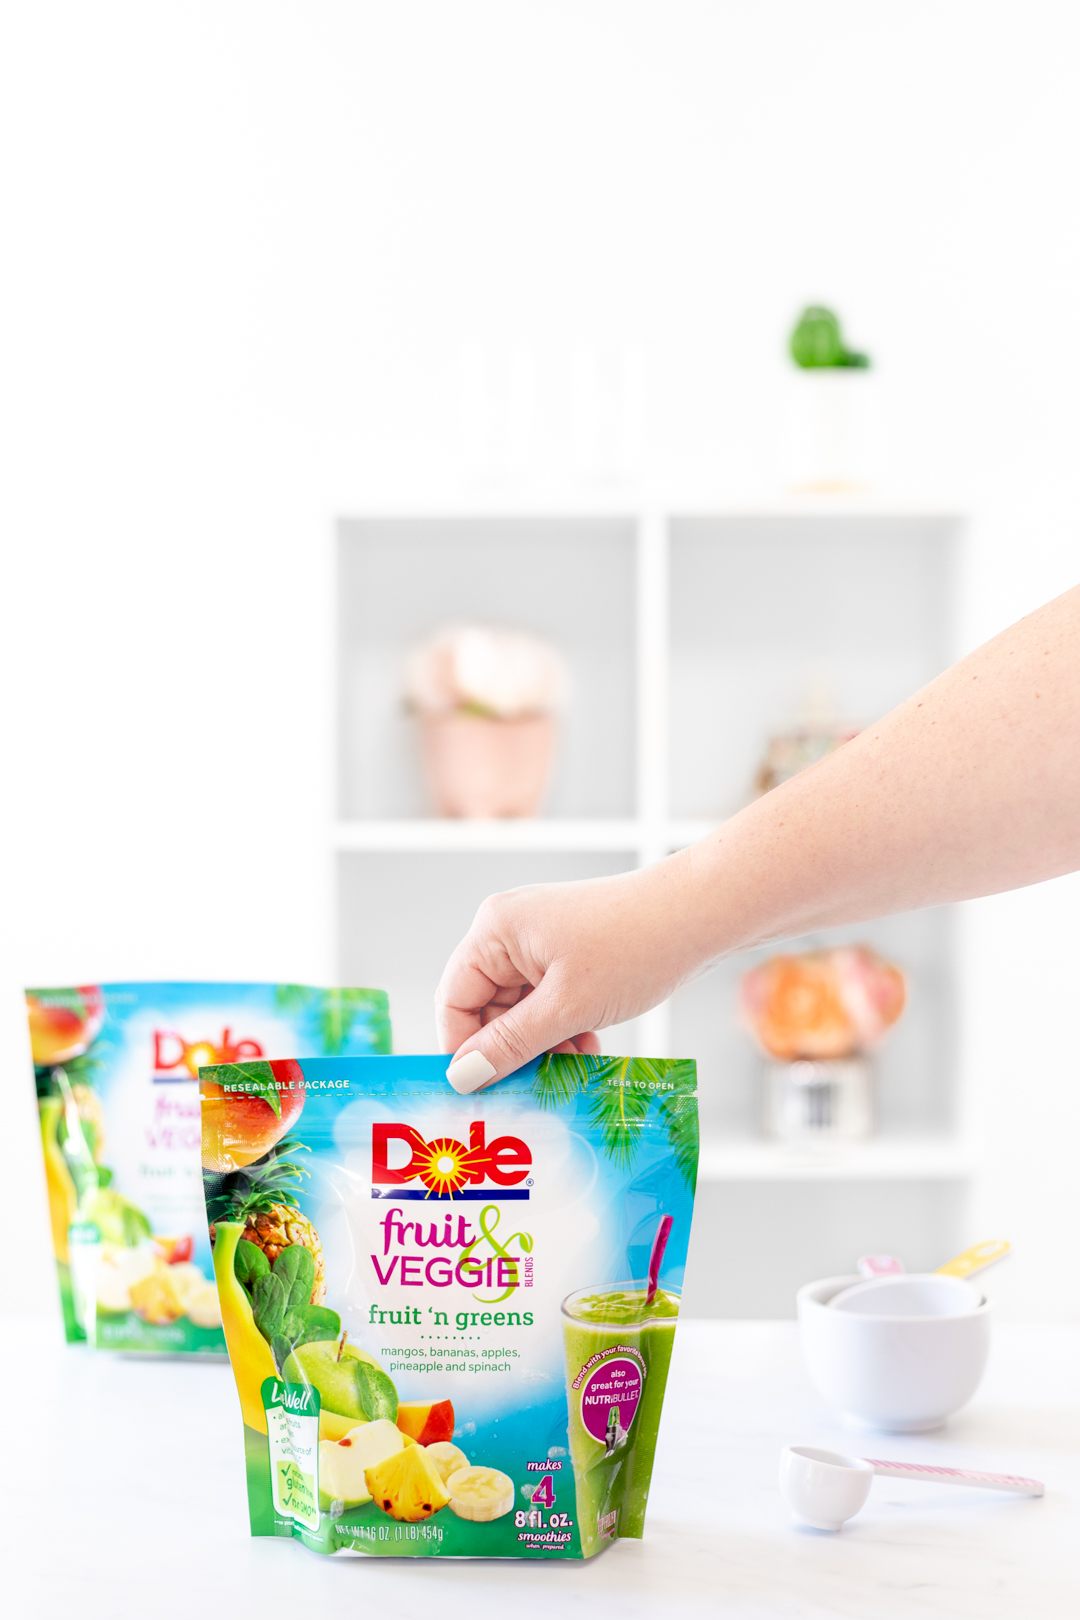 Dole frozen fruit product